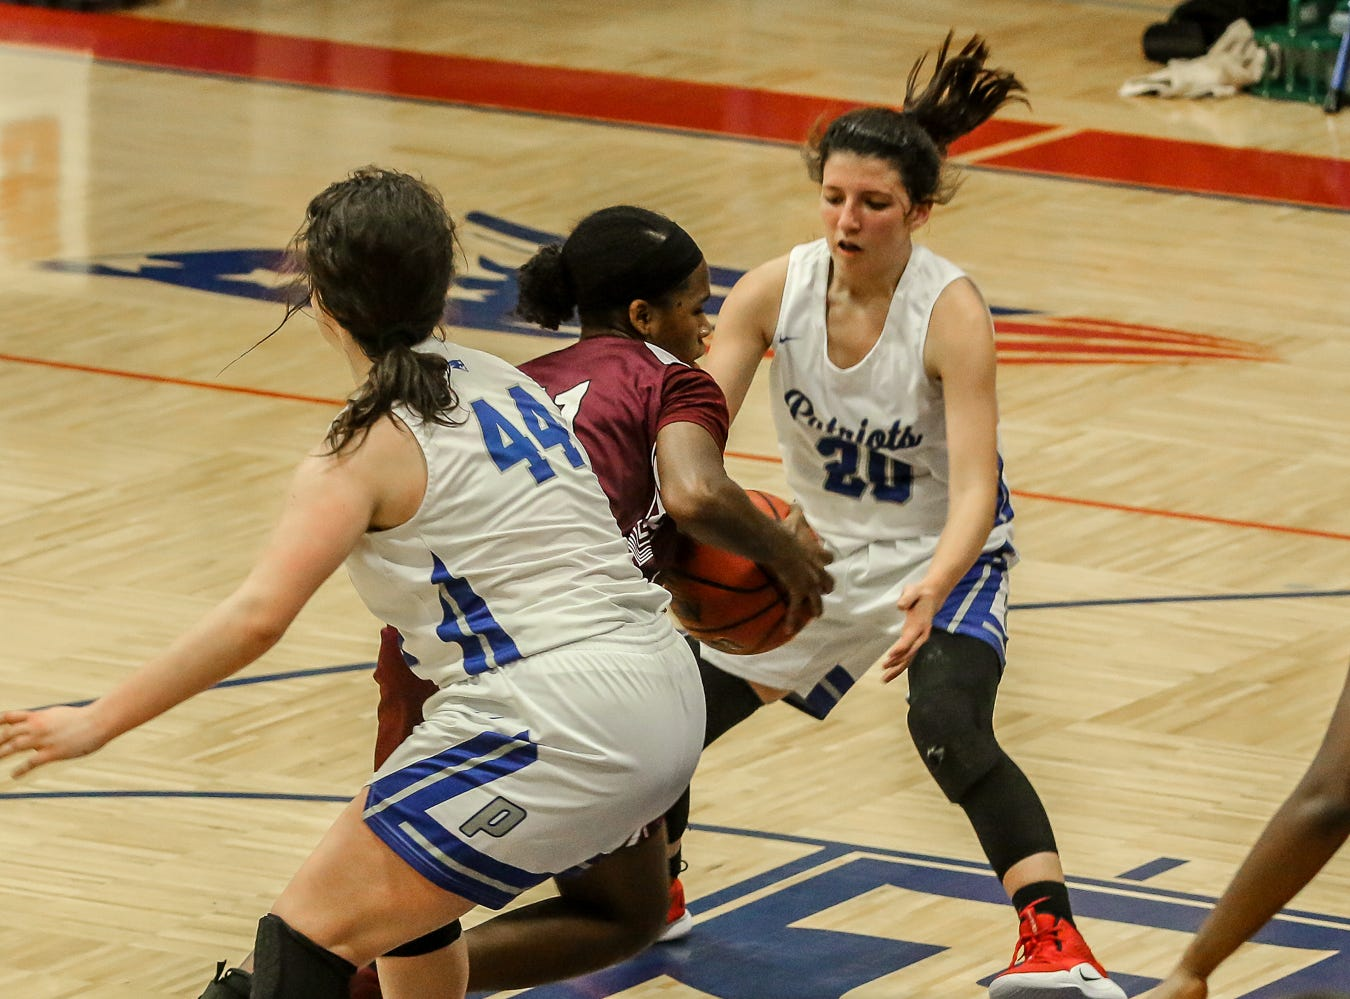 PHS' Nala Baker (11) drives in between Pace's Paiten Rivera (44) and Shay Crooks (20) at Pace High School on Friday, January 4, 2019.